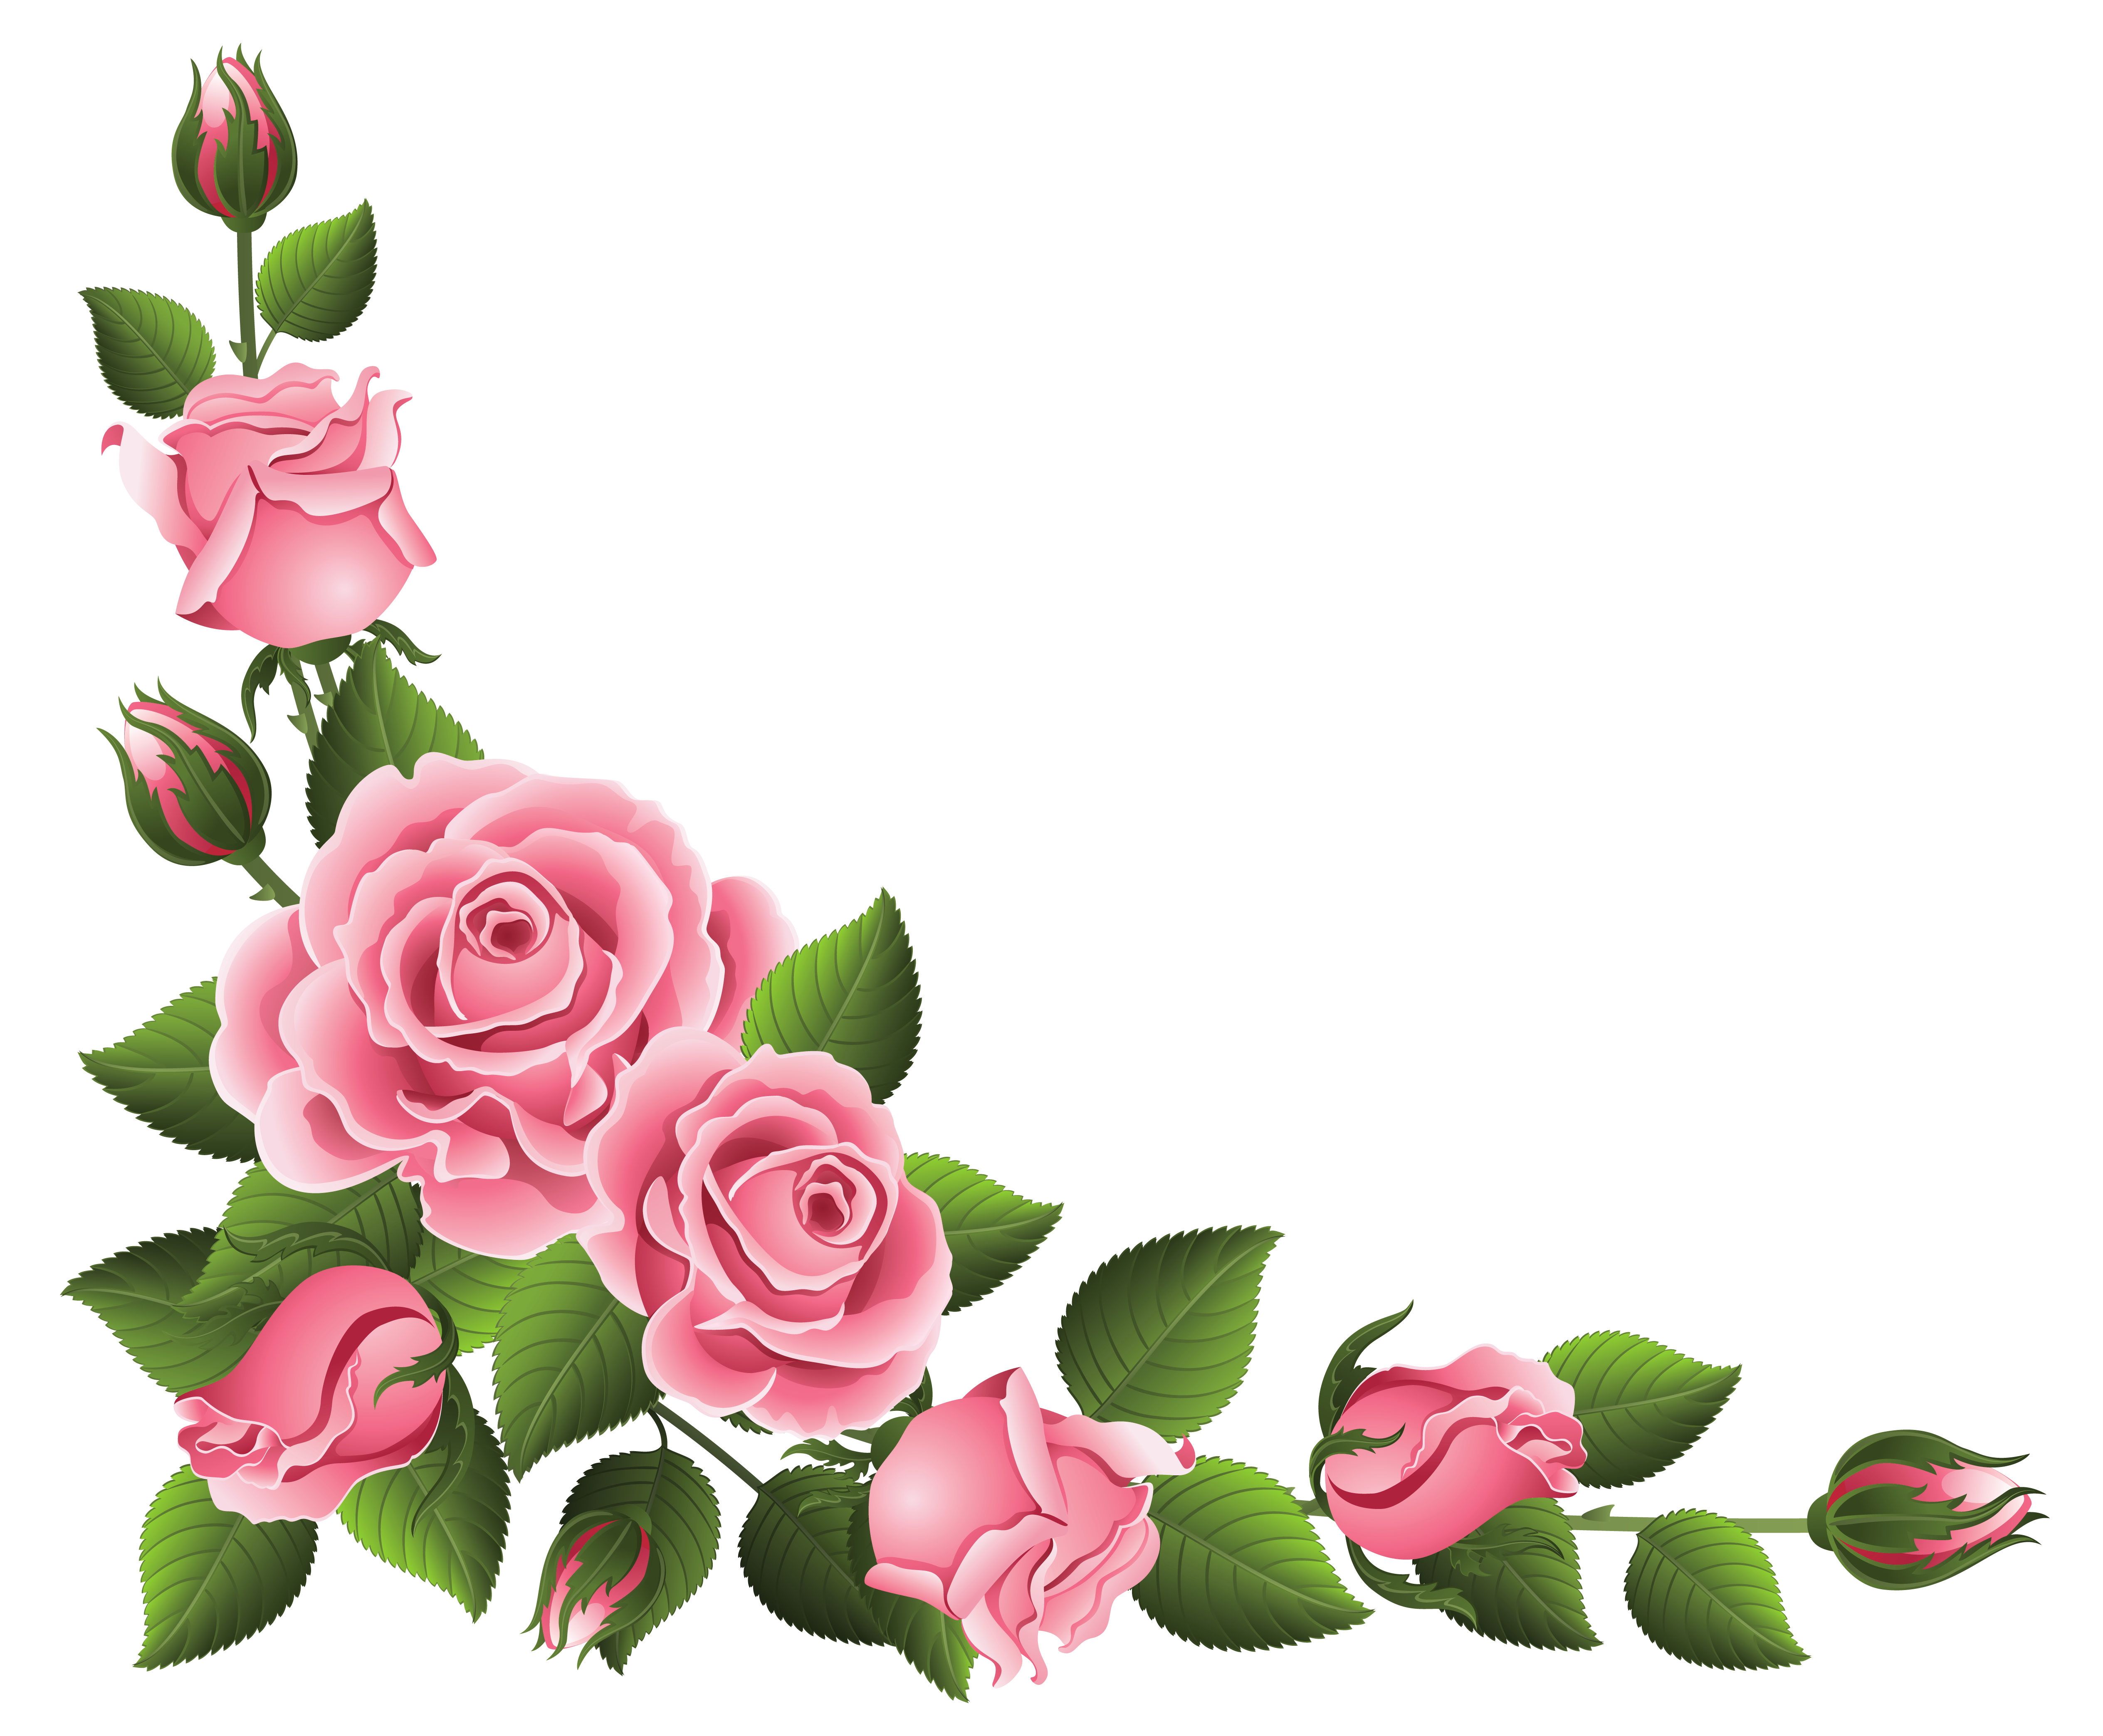 Corner Decoration With Roses Png Clipart Picture Clip Art Borders Flower Border Rose Clipart